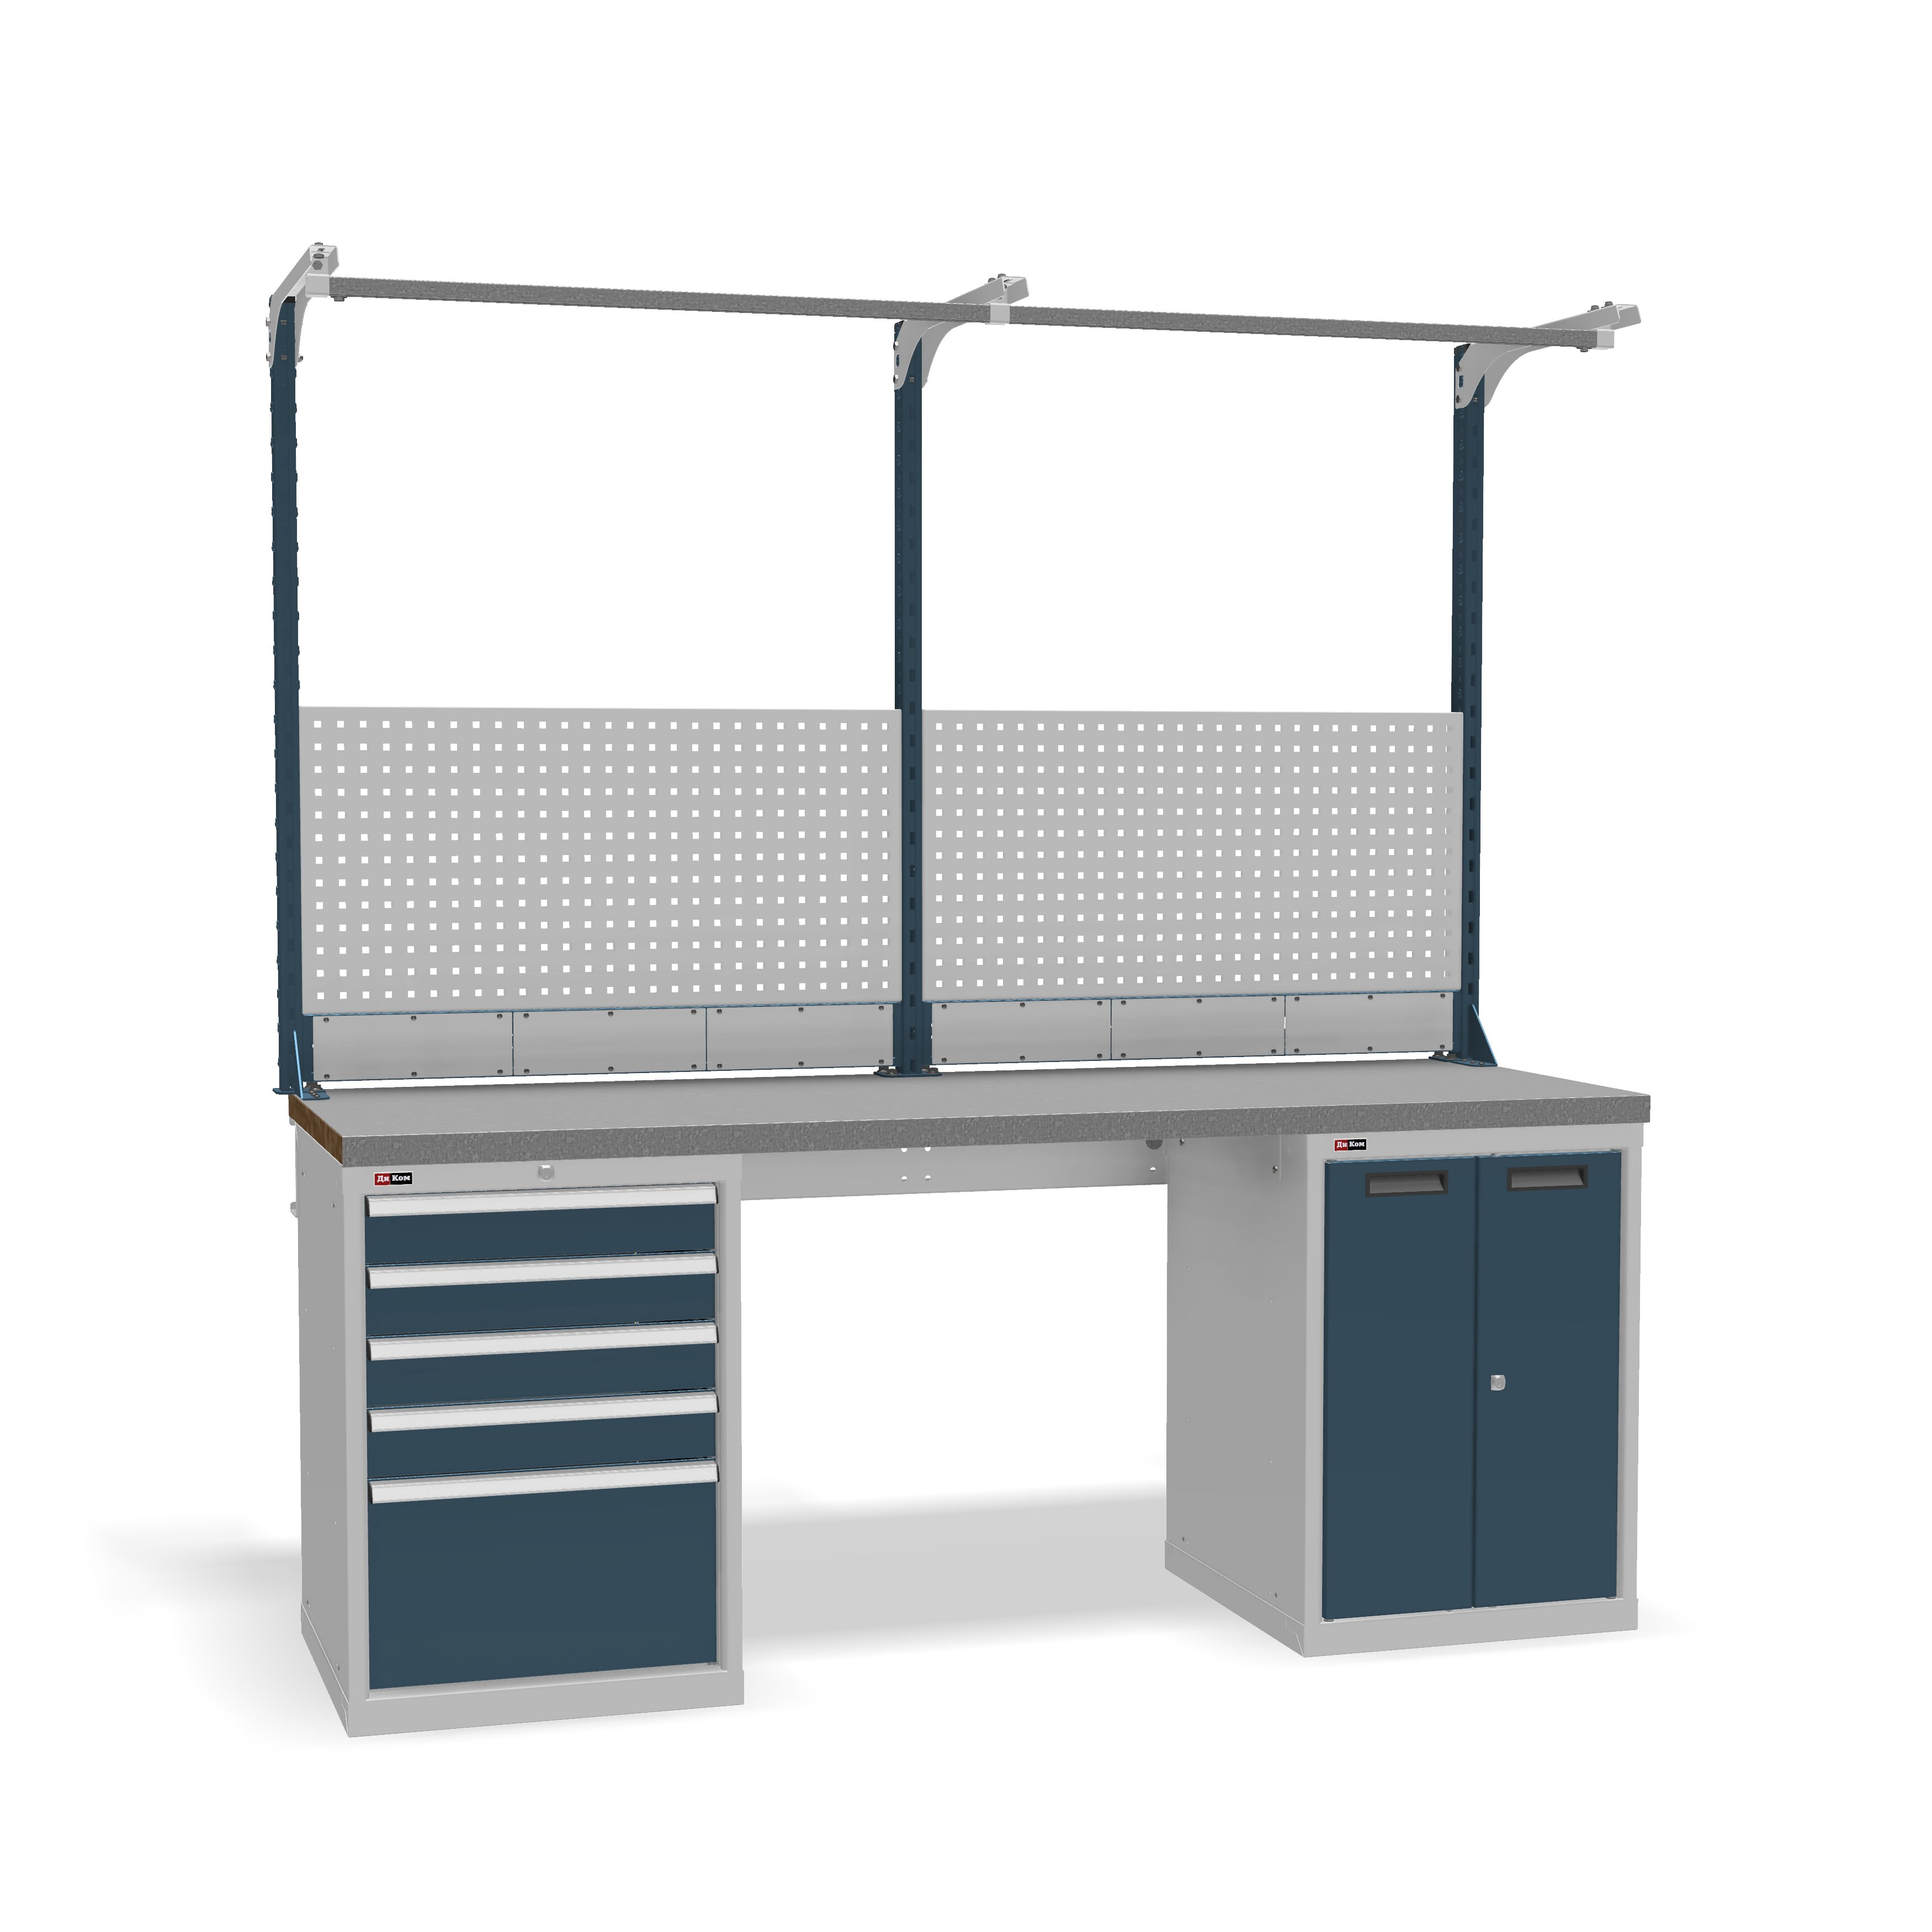 DiKom VS-200-07 Workbench + DiKom Perforated Panel VS-200-E2